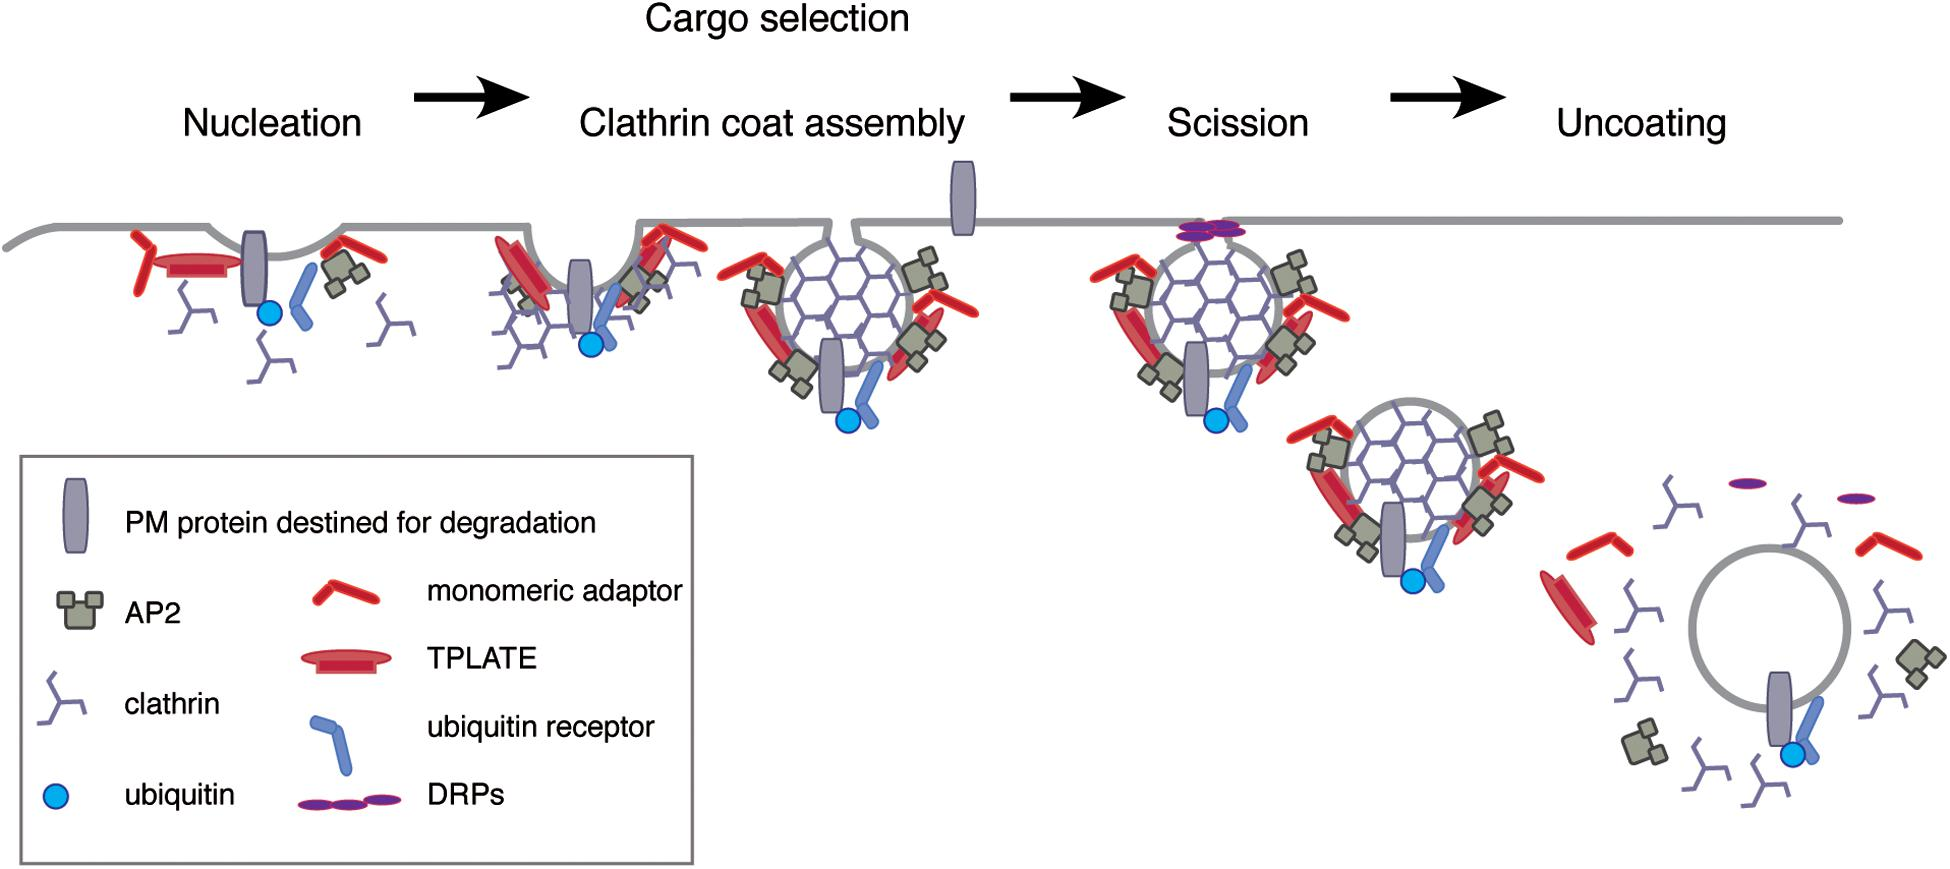 Model for the biogenesis of clathrin coated pits (CCPs) and